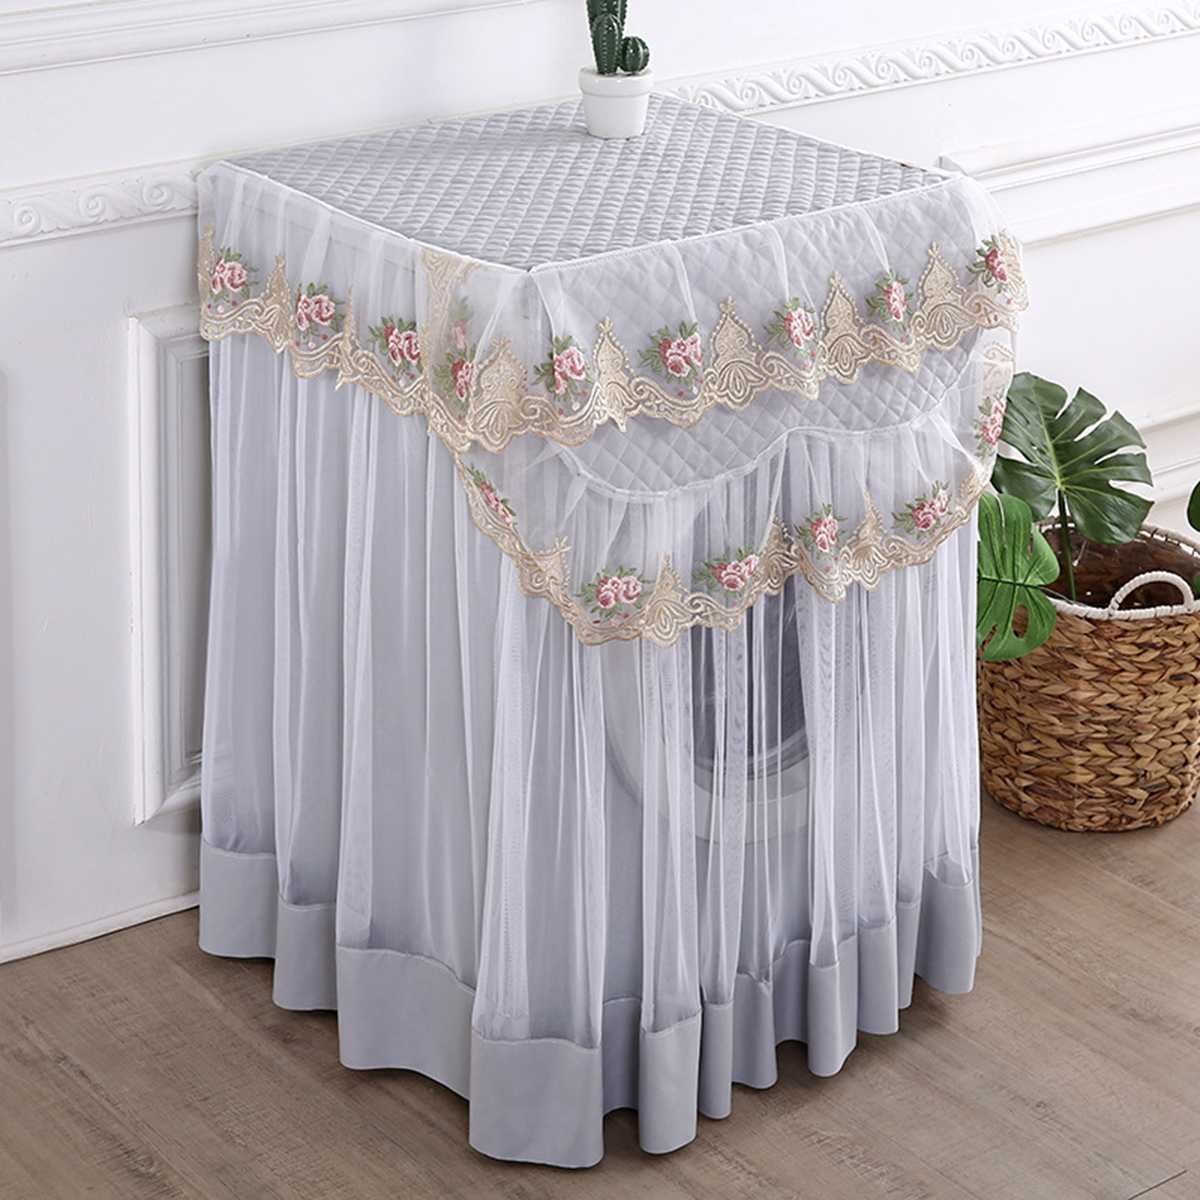 Romantic Lace Washing Machine Cover Dustproof Embroidery Floral Home Decor Protector Washing Machine Covers 60*60*85cm